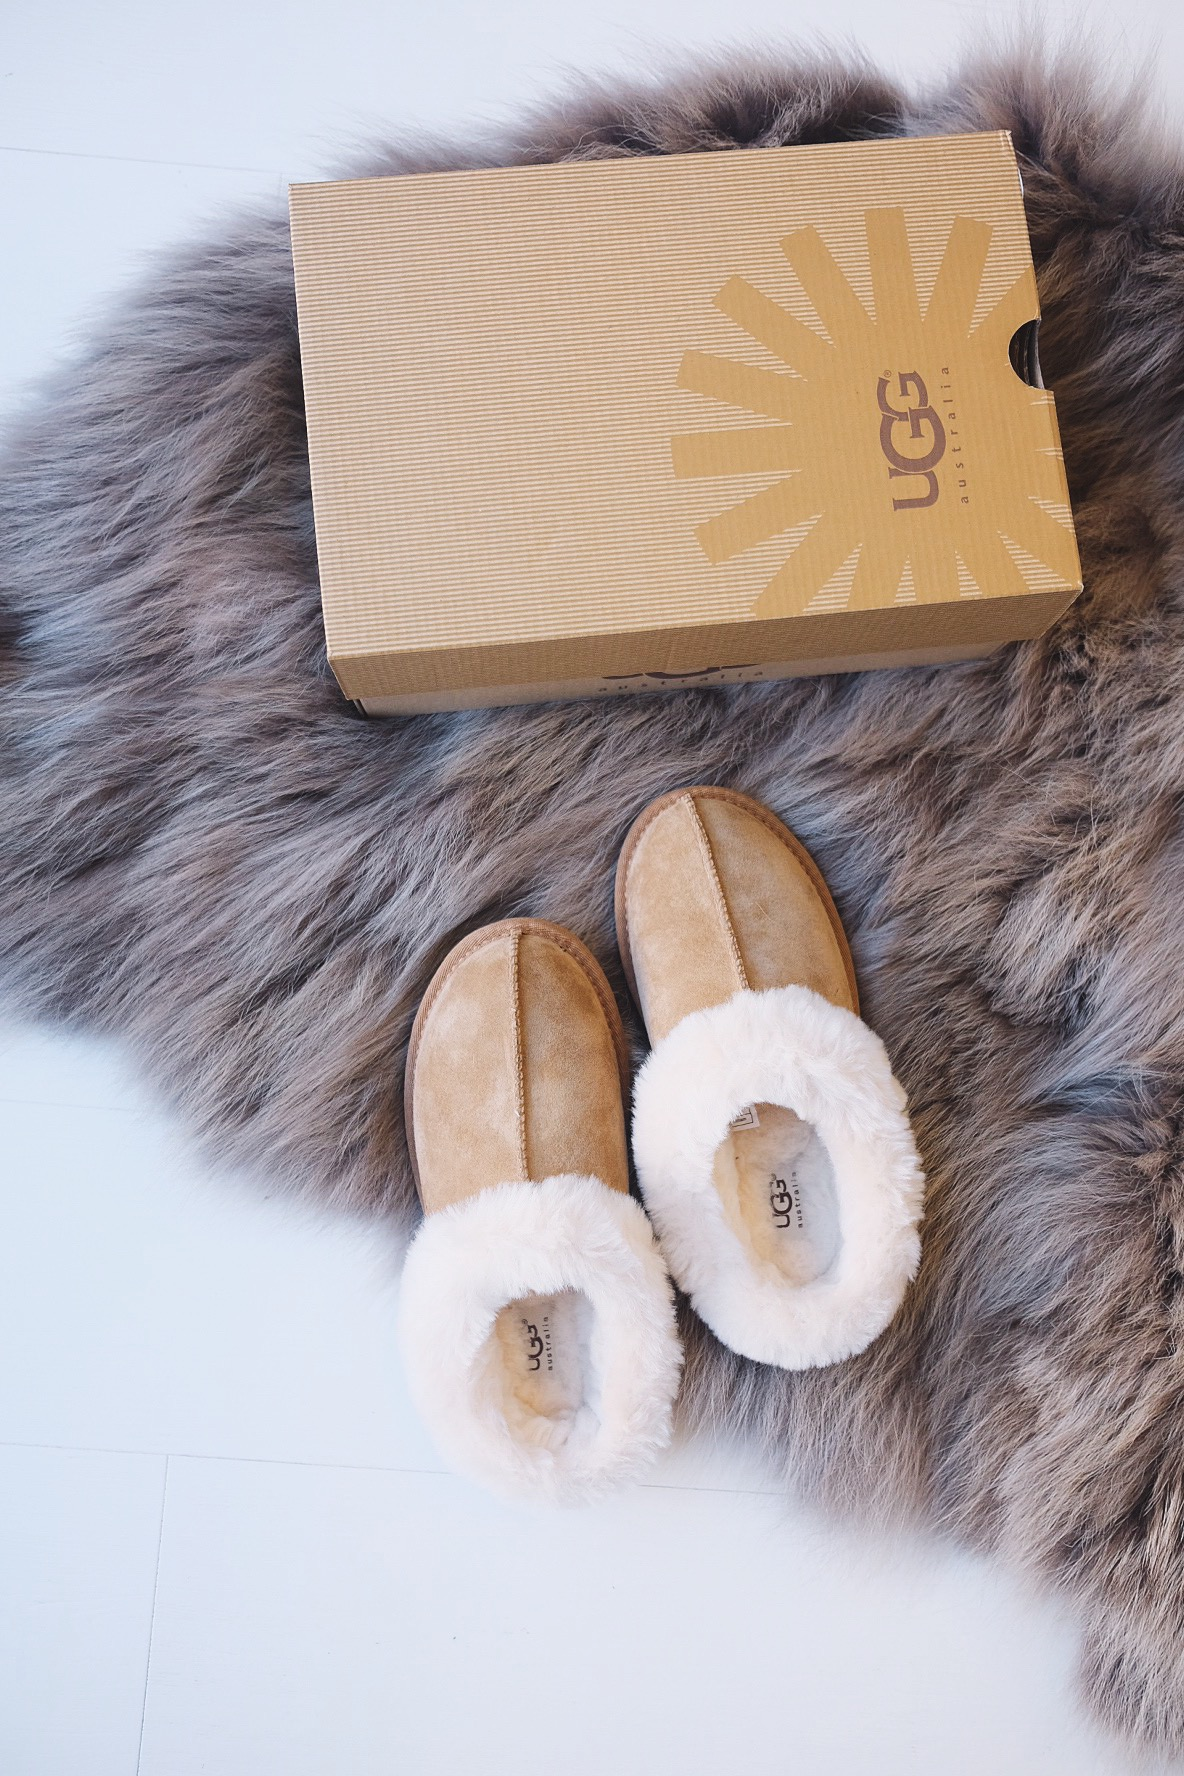 Sunday Shopping: Ugg Slippers